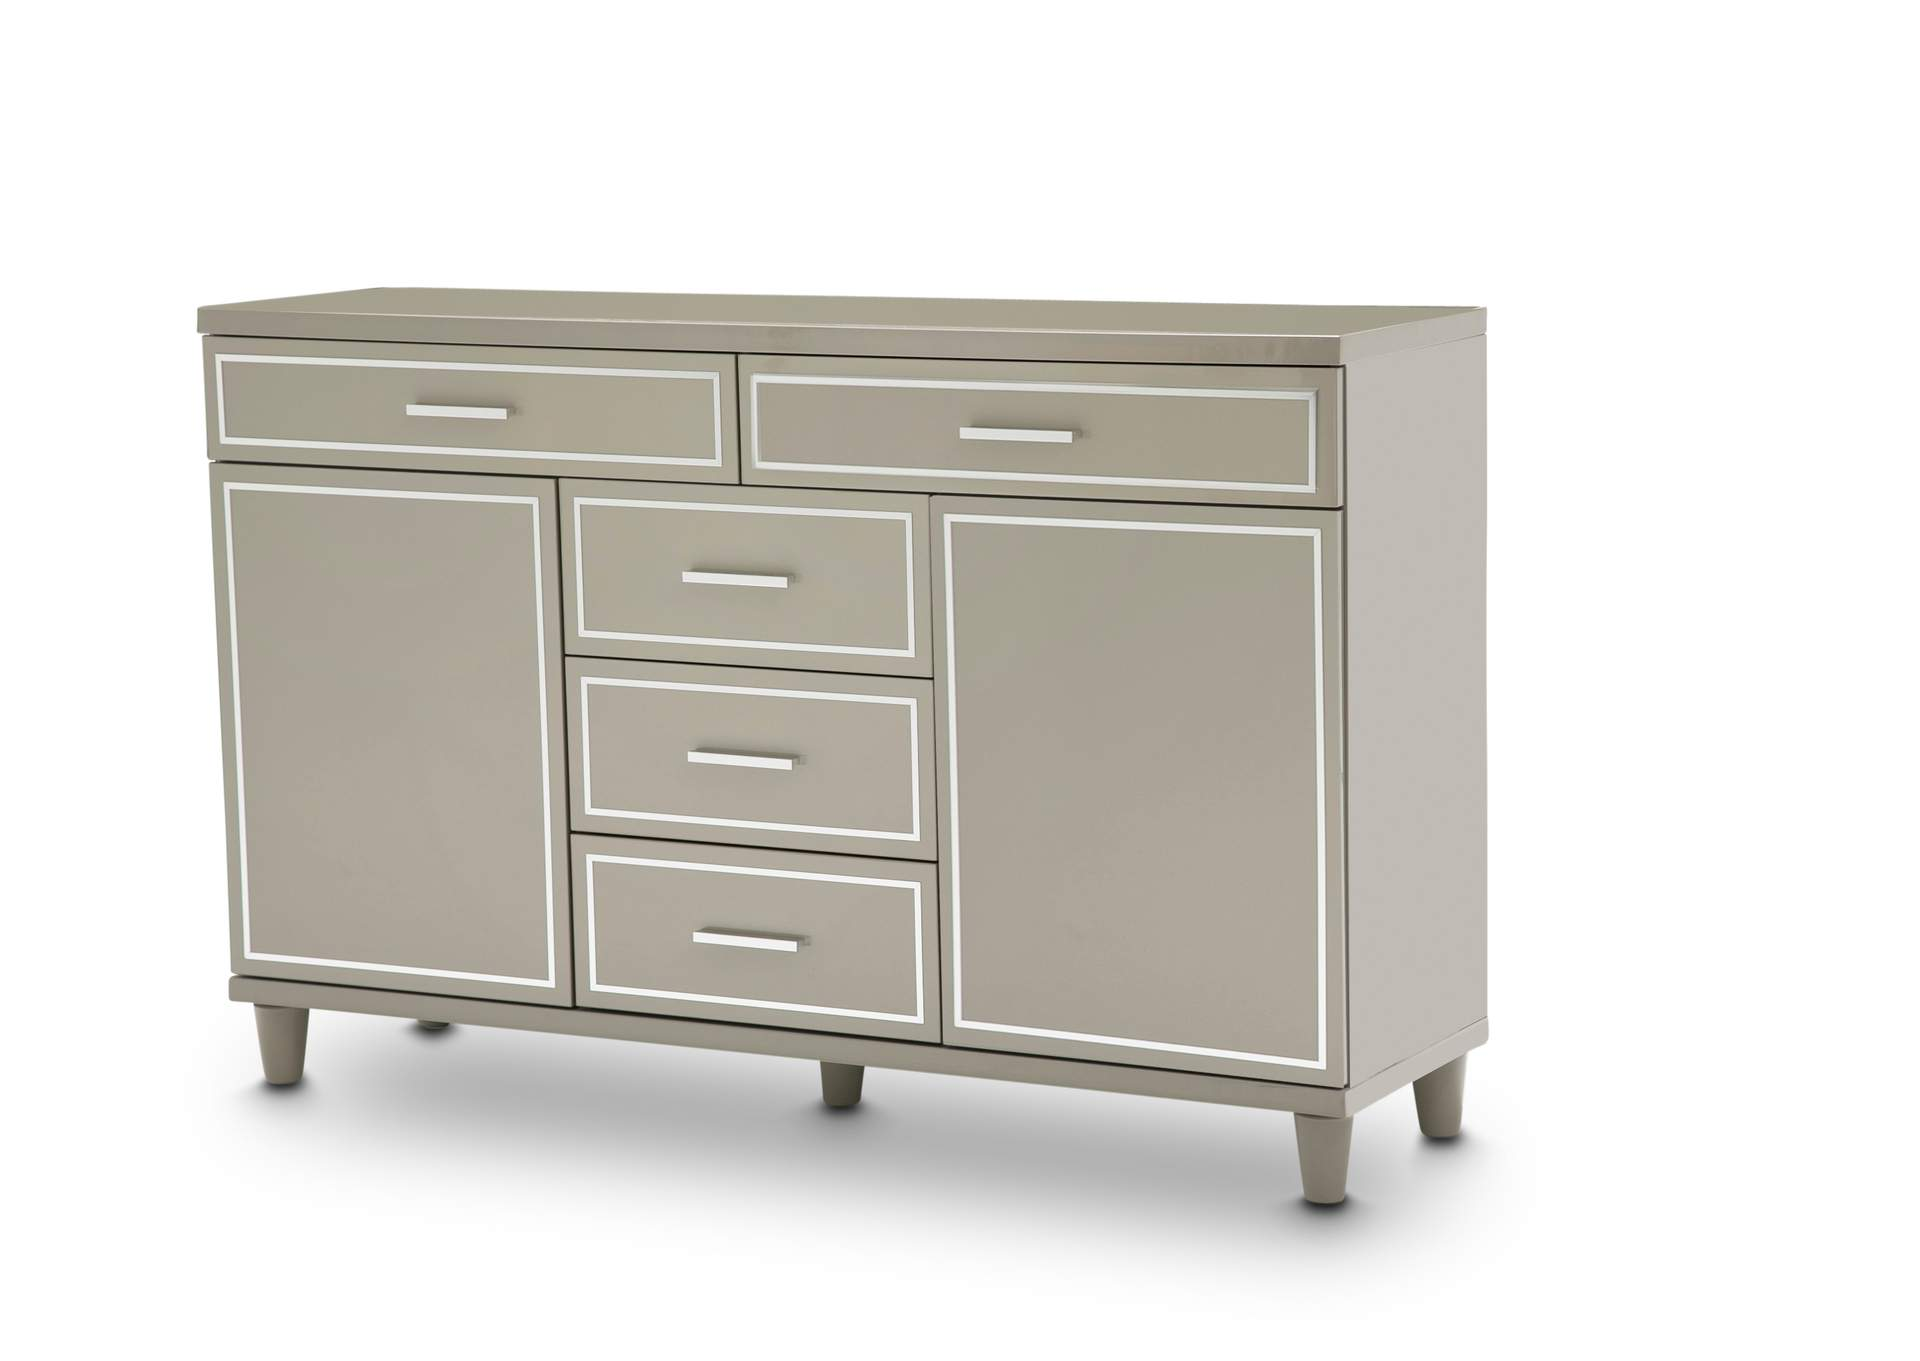 Urban Place Dove Grey Urban Place Dresser Dove Gray,AICO